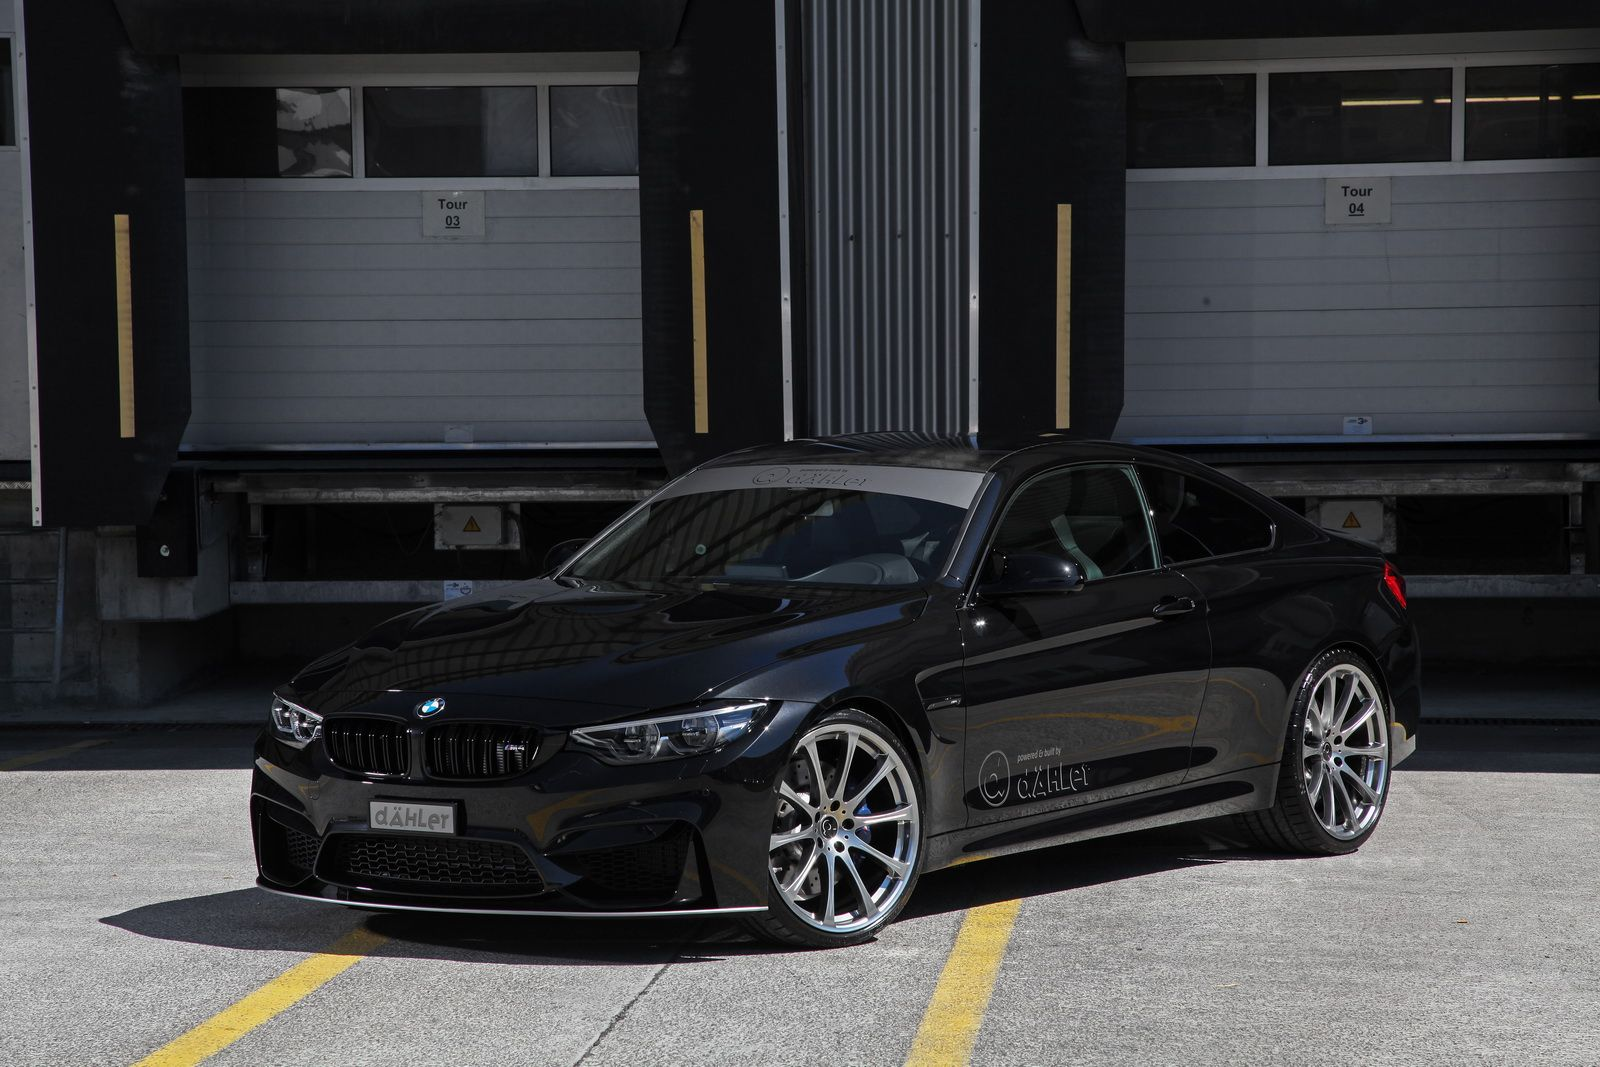 Dahler S Bmw M4 Competition Package Is A 532hp Monster With